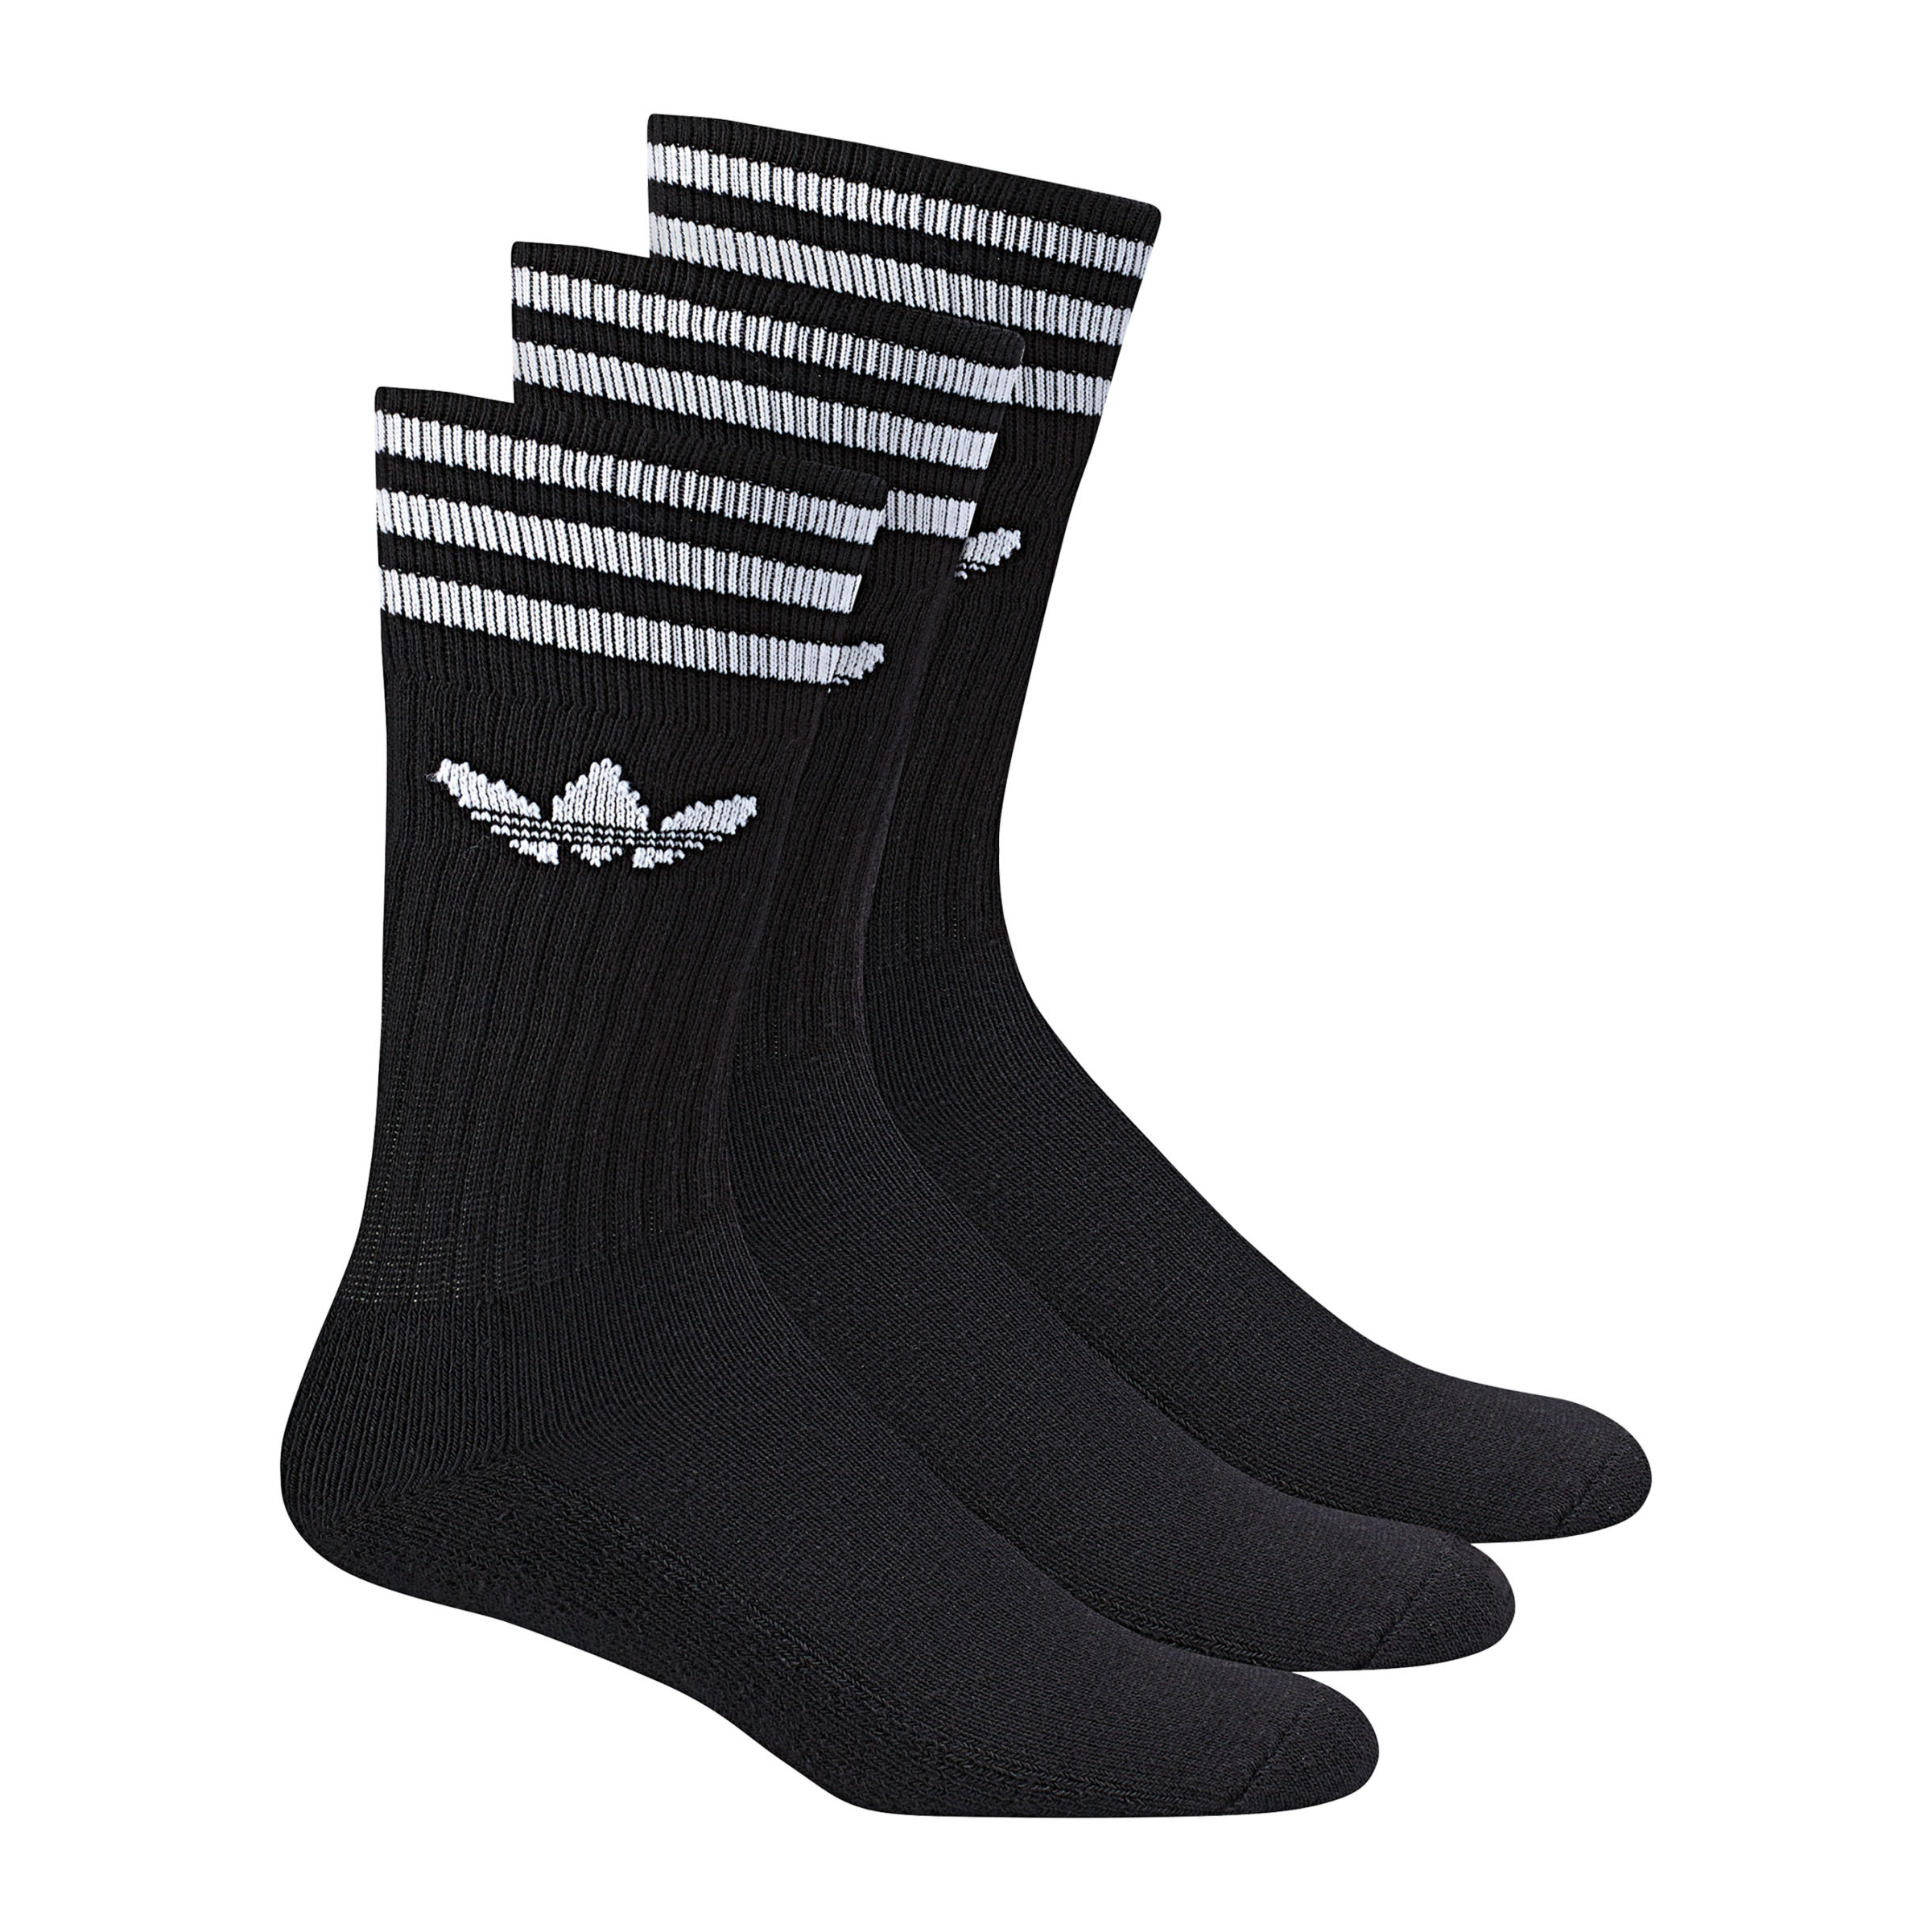 Adidas Solid Crew Socks Pack of 3 Black White